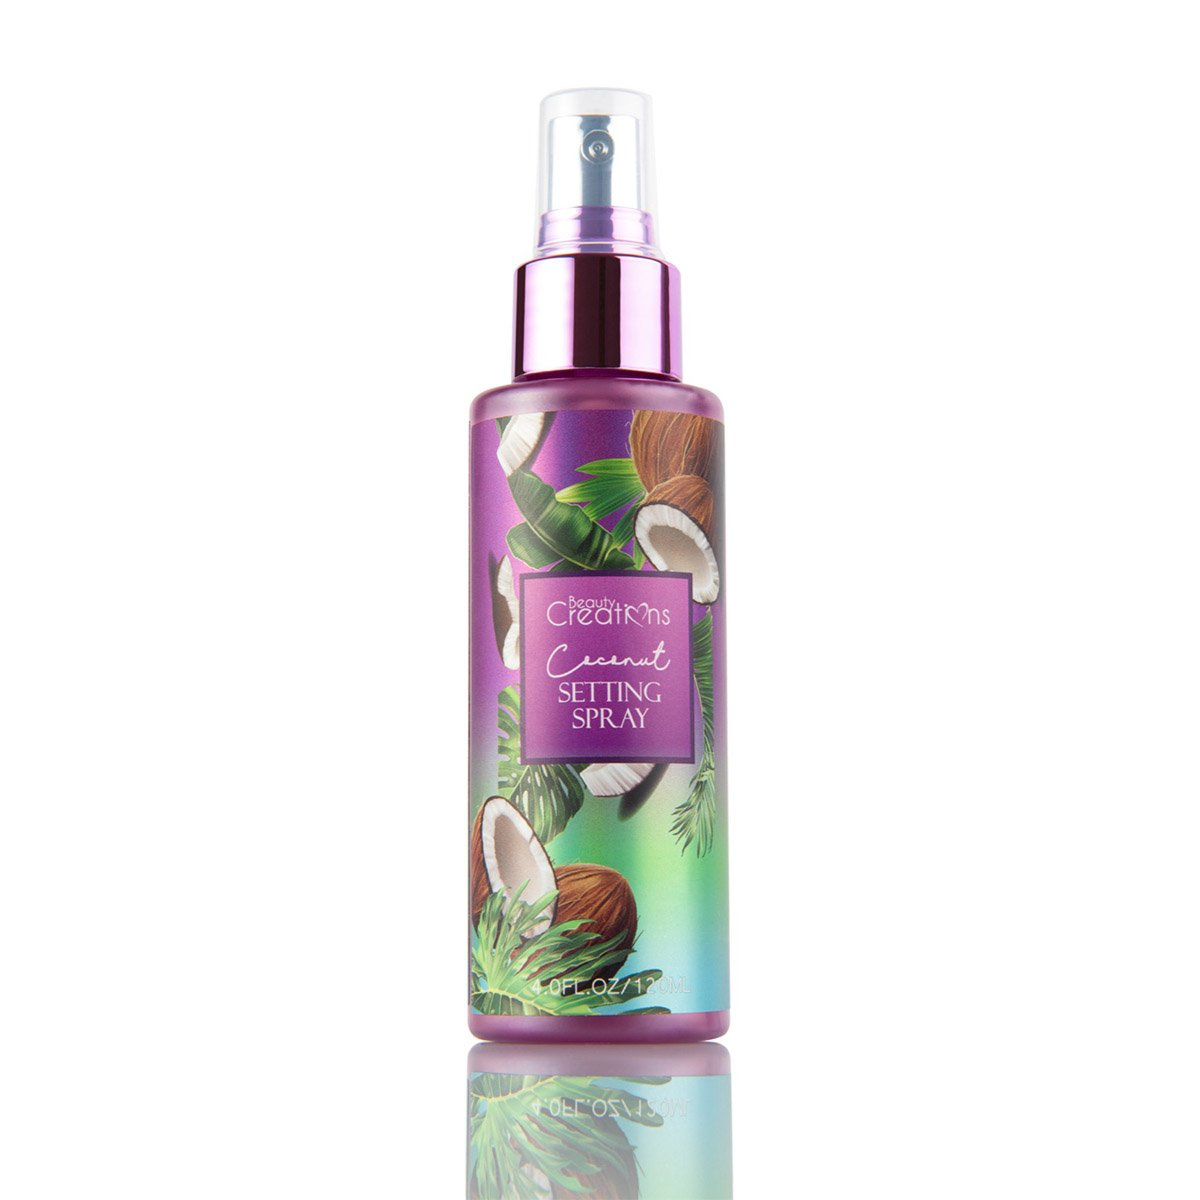 COCONUT SETTING SPRAY - BEAUTY CREATIONS